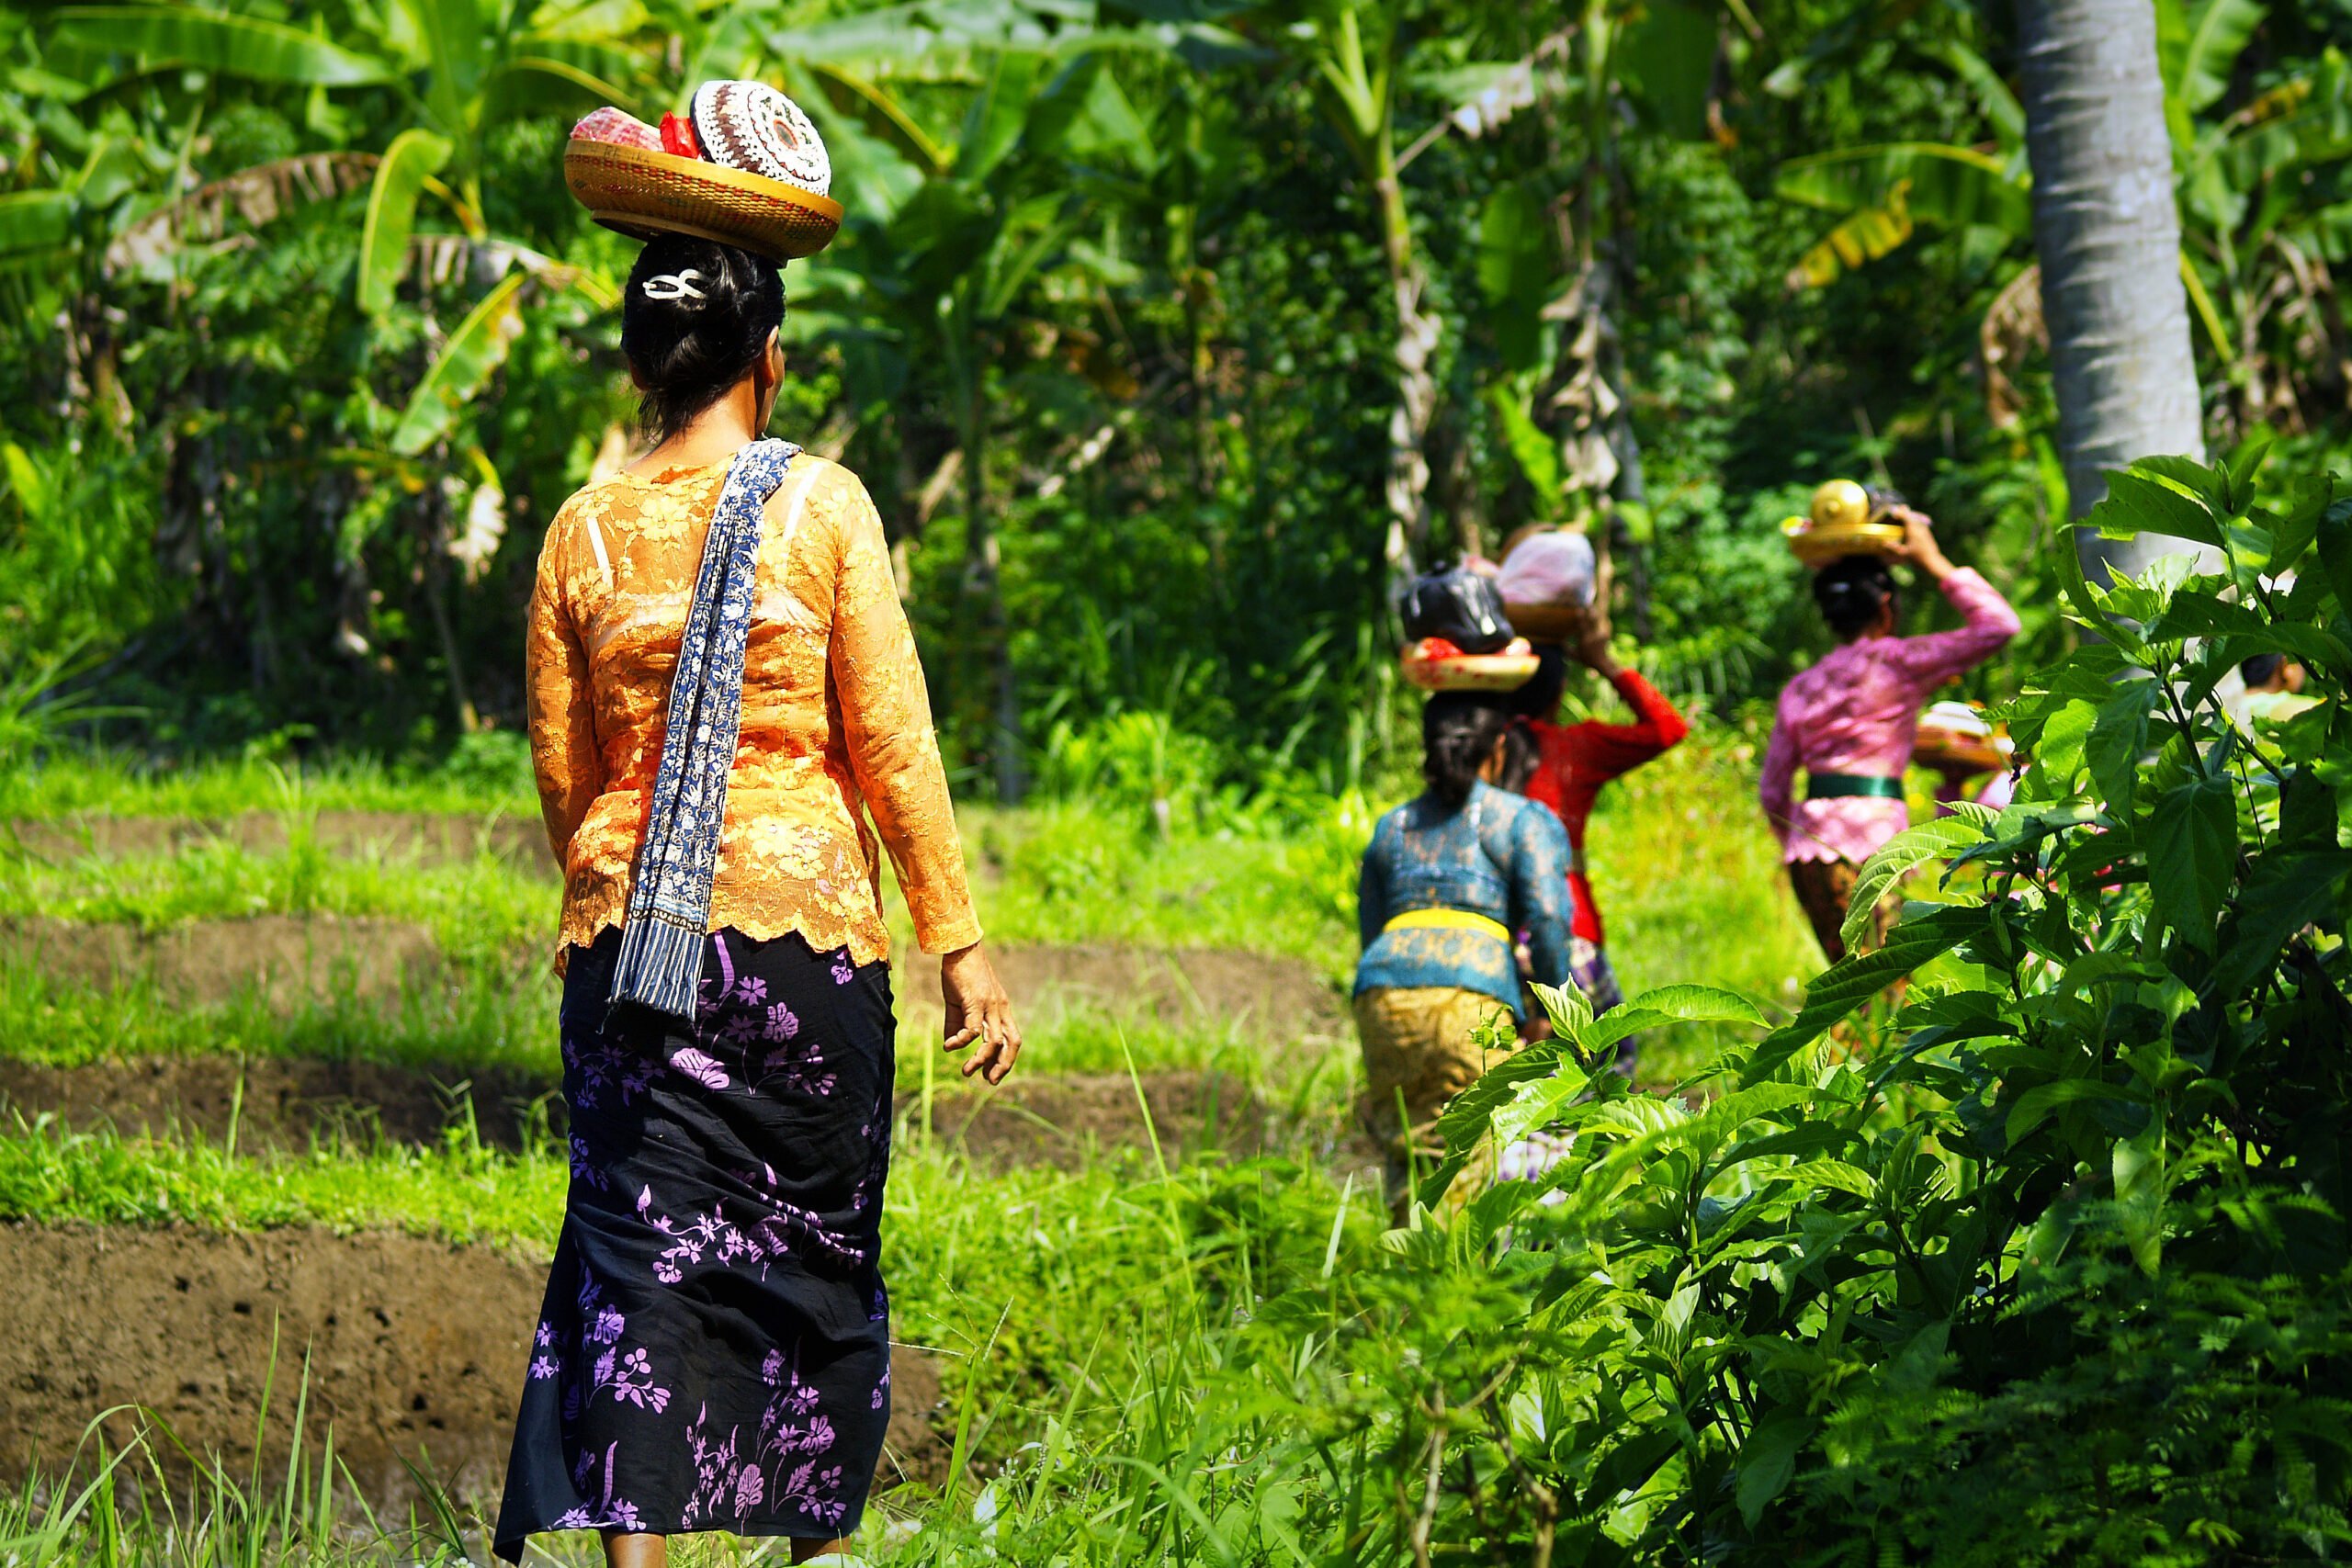 Learn More About Balinese Traditions During The Balinese Local Homestay Experience In Bresela Village